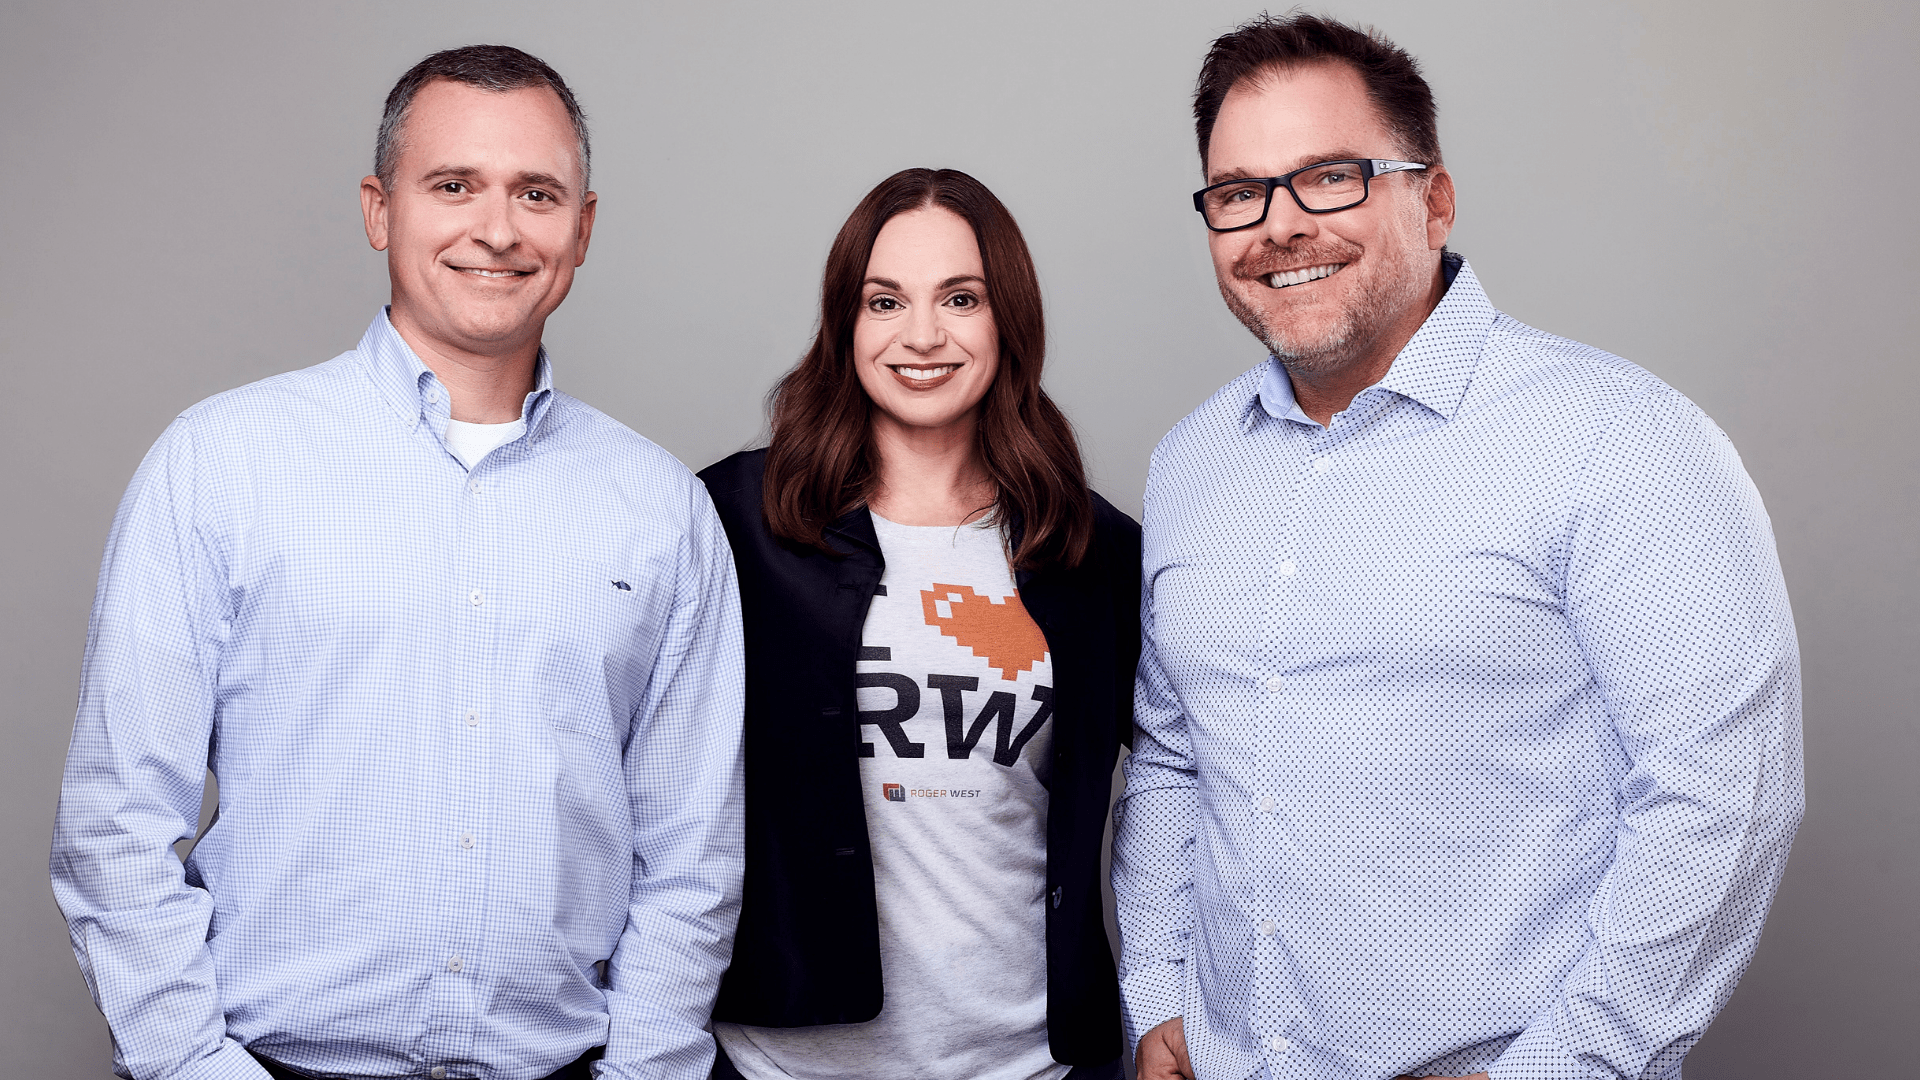 From left to right: Michael Trocke, chief creative officer; Jennie Treby, president; and Michael Westafer, founder and CEO